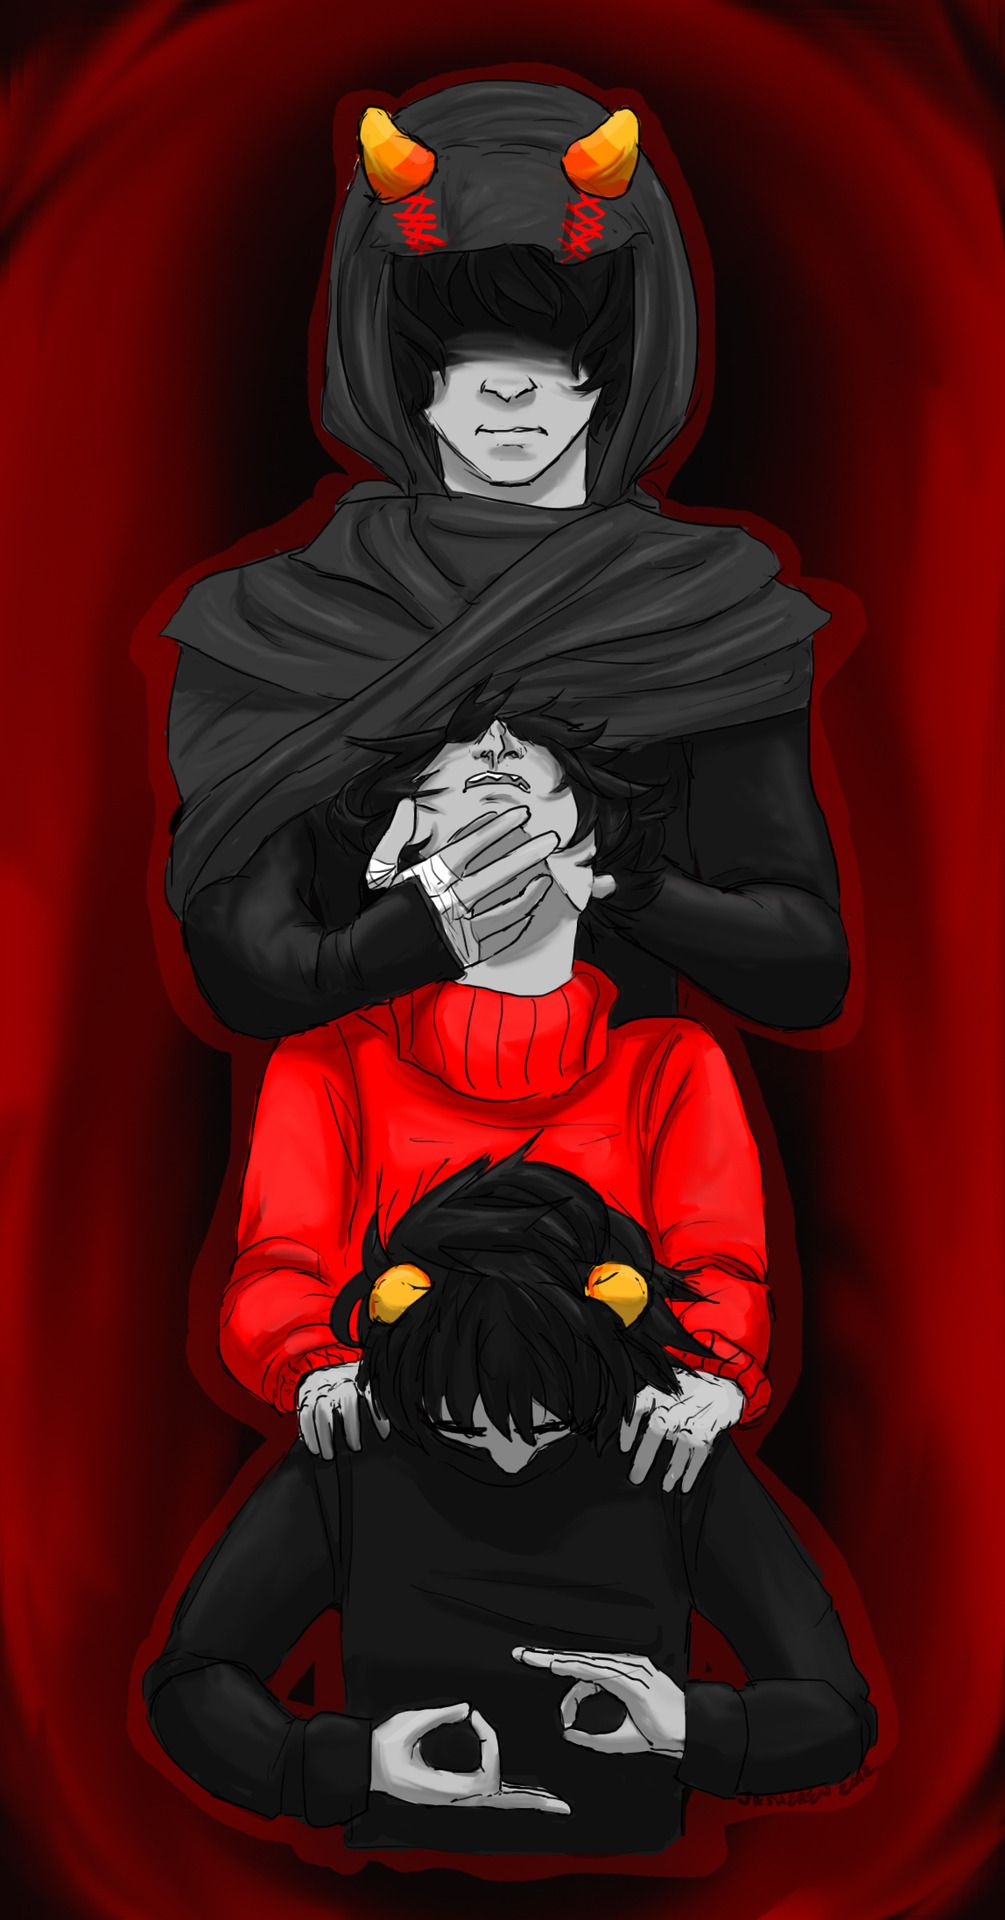 The signless Karkat and kankri<<<I know that this is